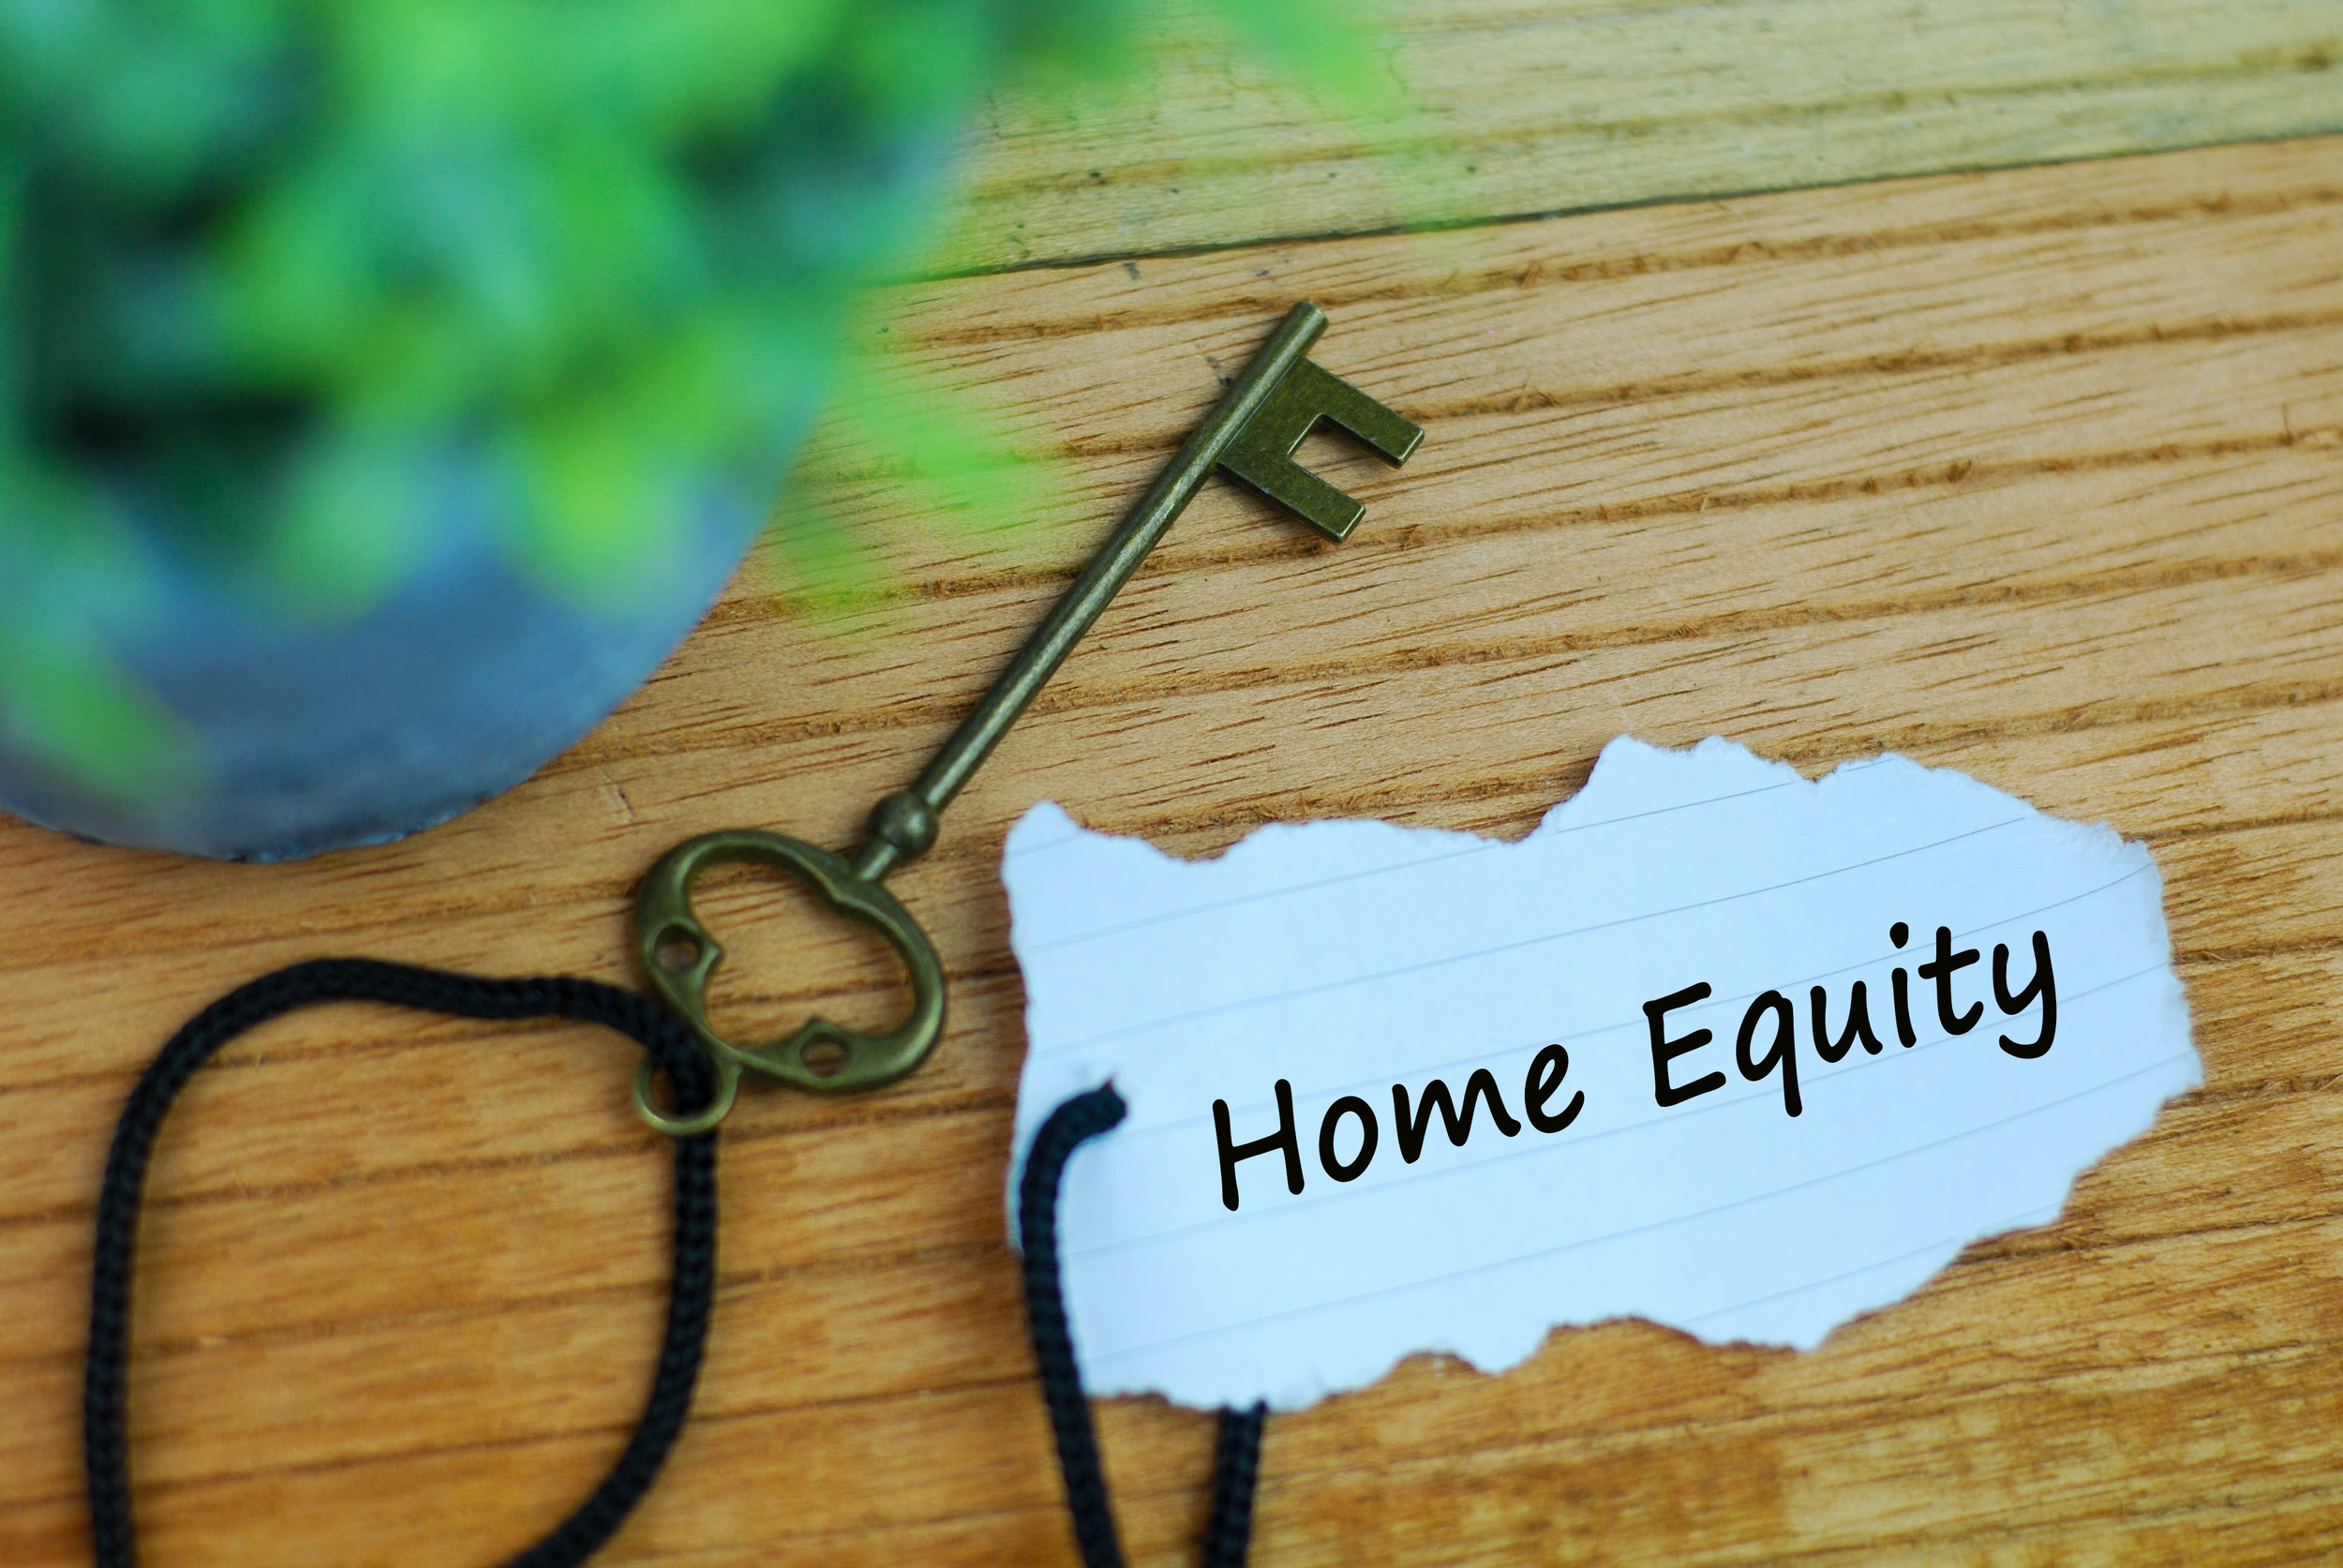 Make all your debt tax deductible with a home equity loan & write it off!